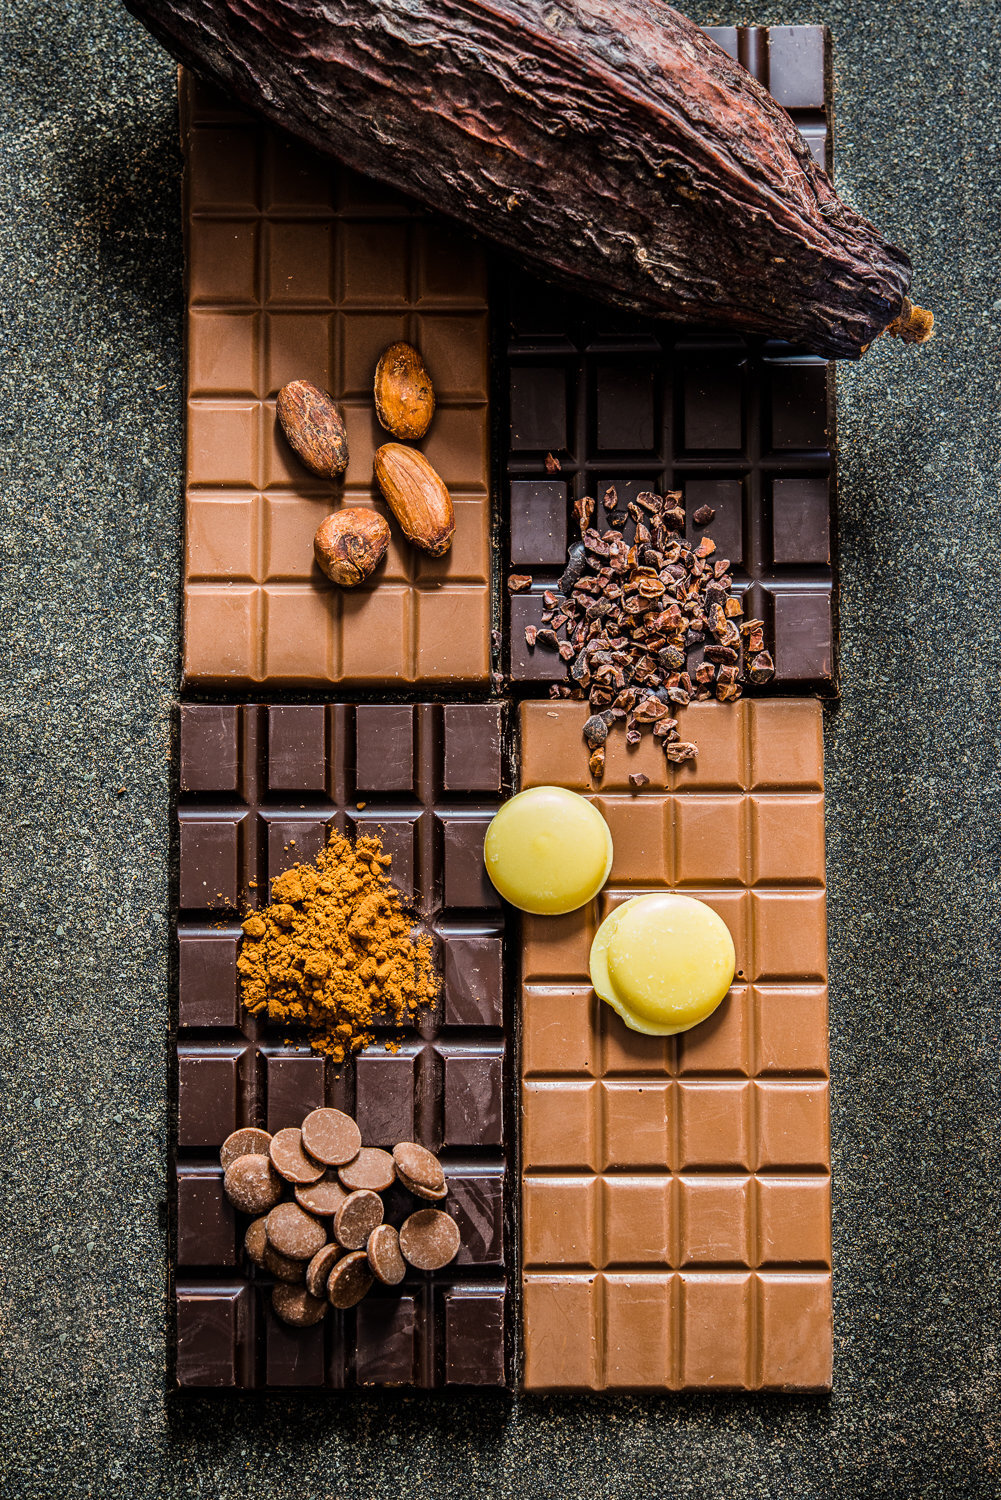 Chocolate with cocoa beans, cocoa butter and cocoa